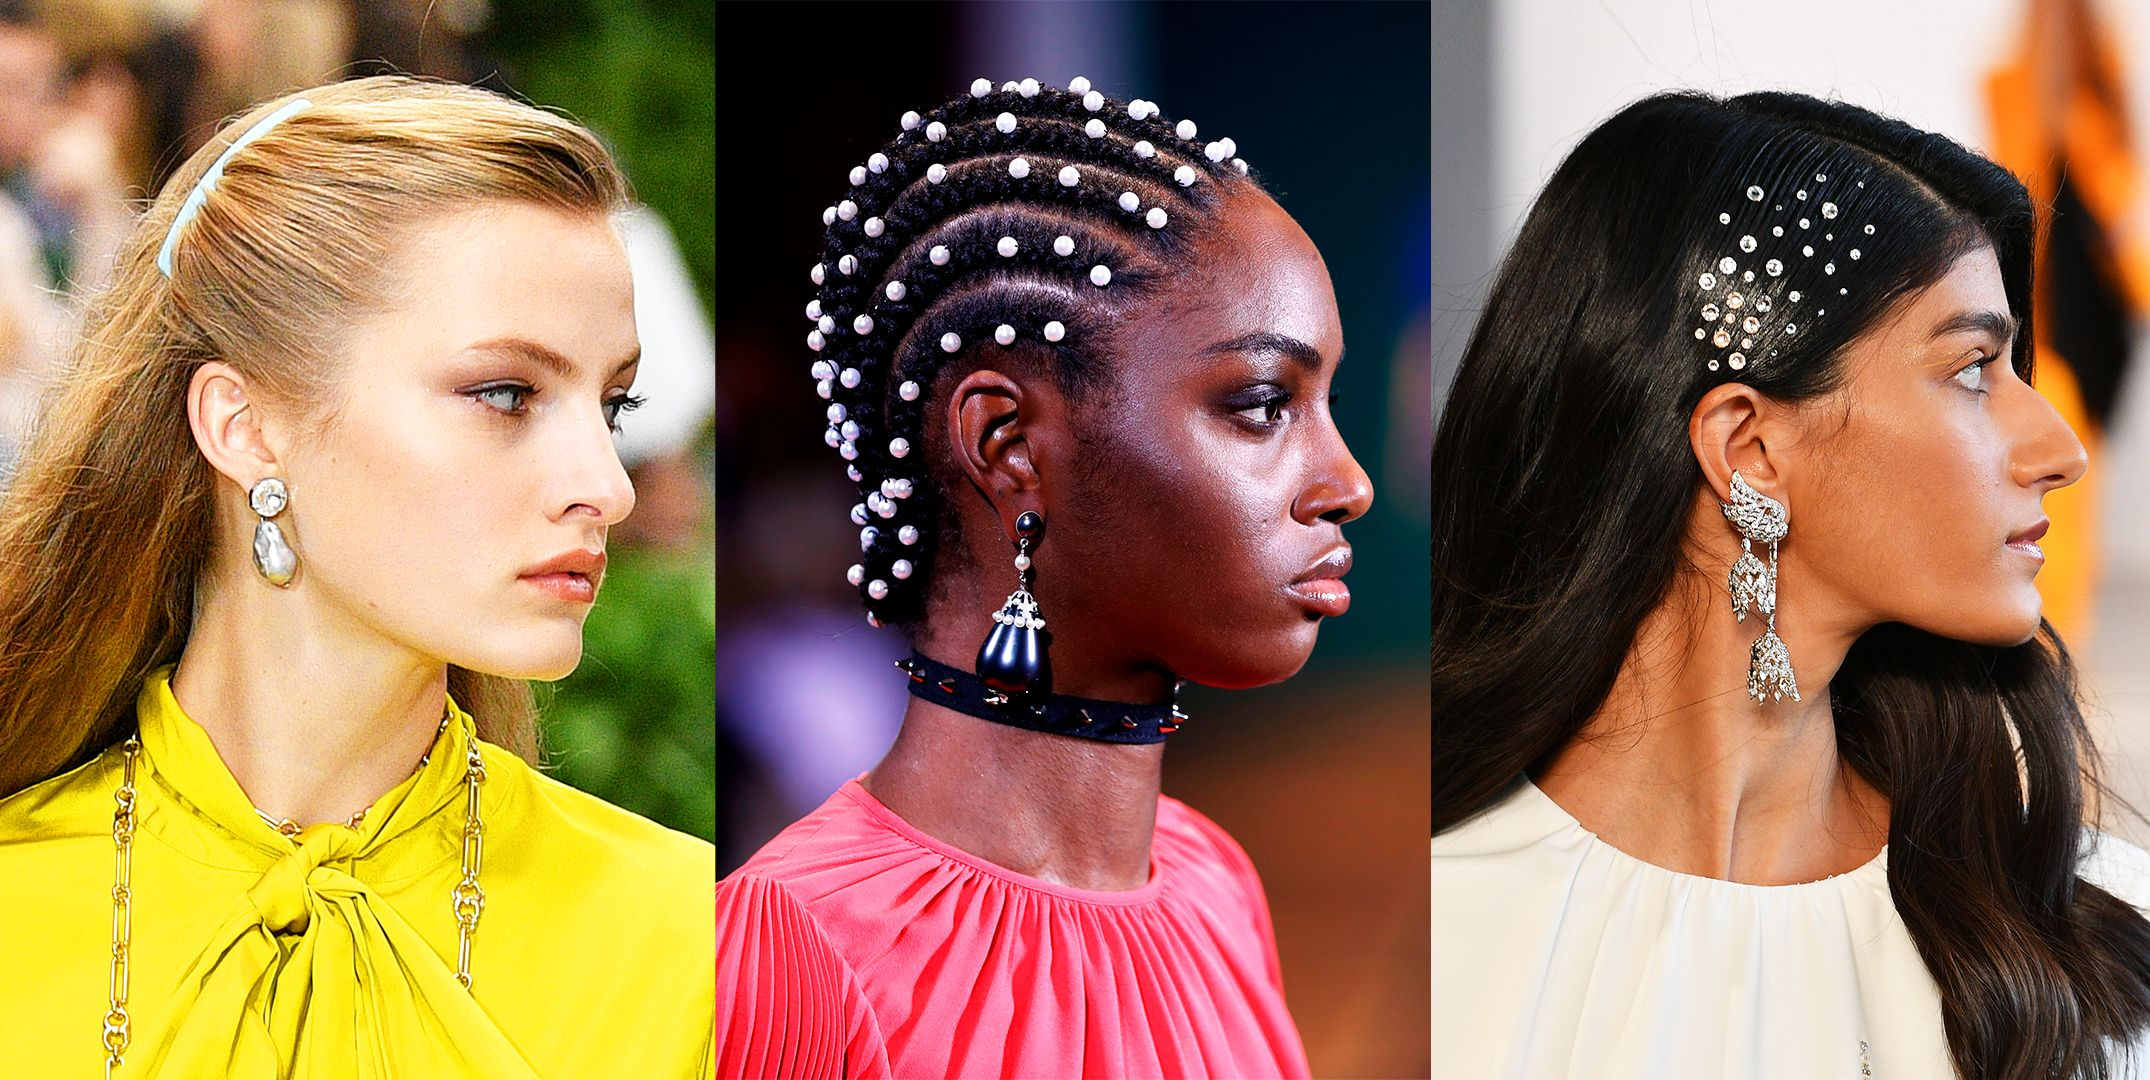 Spring 2020 Hair Trends.Spring 2020 Hair Trends 13 Prettiest Hairstyles From